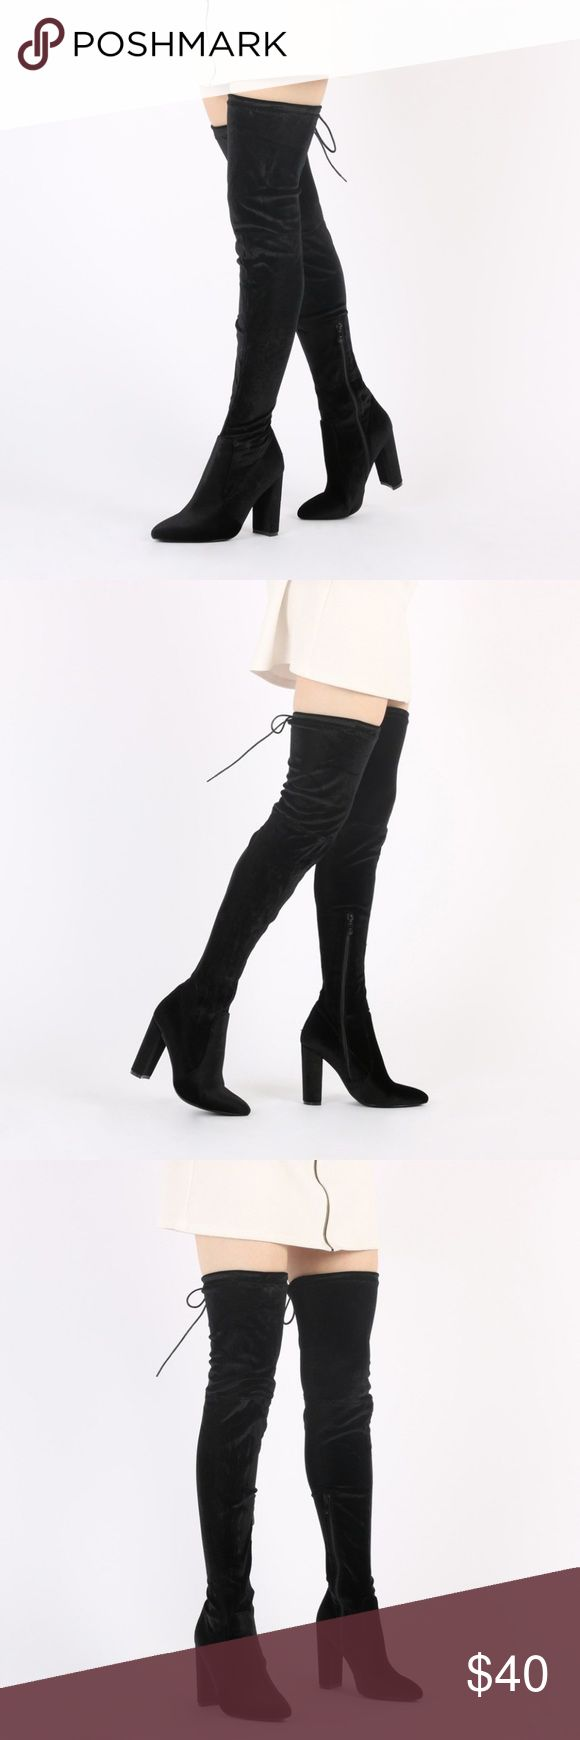 thigh-high boots black thigh-length boots Shoes Over the Knee Boots